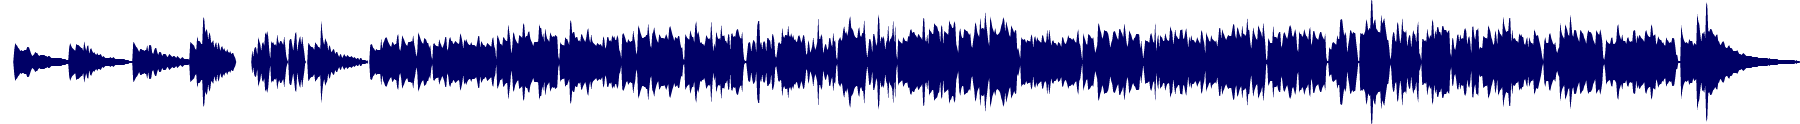 waveform of track #86010